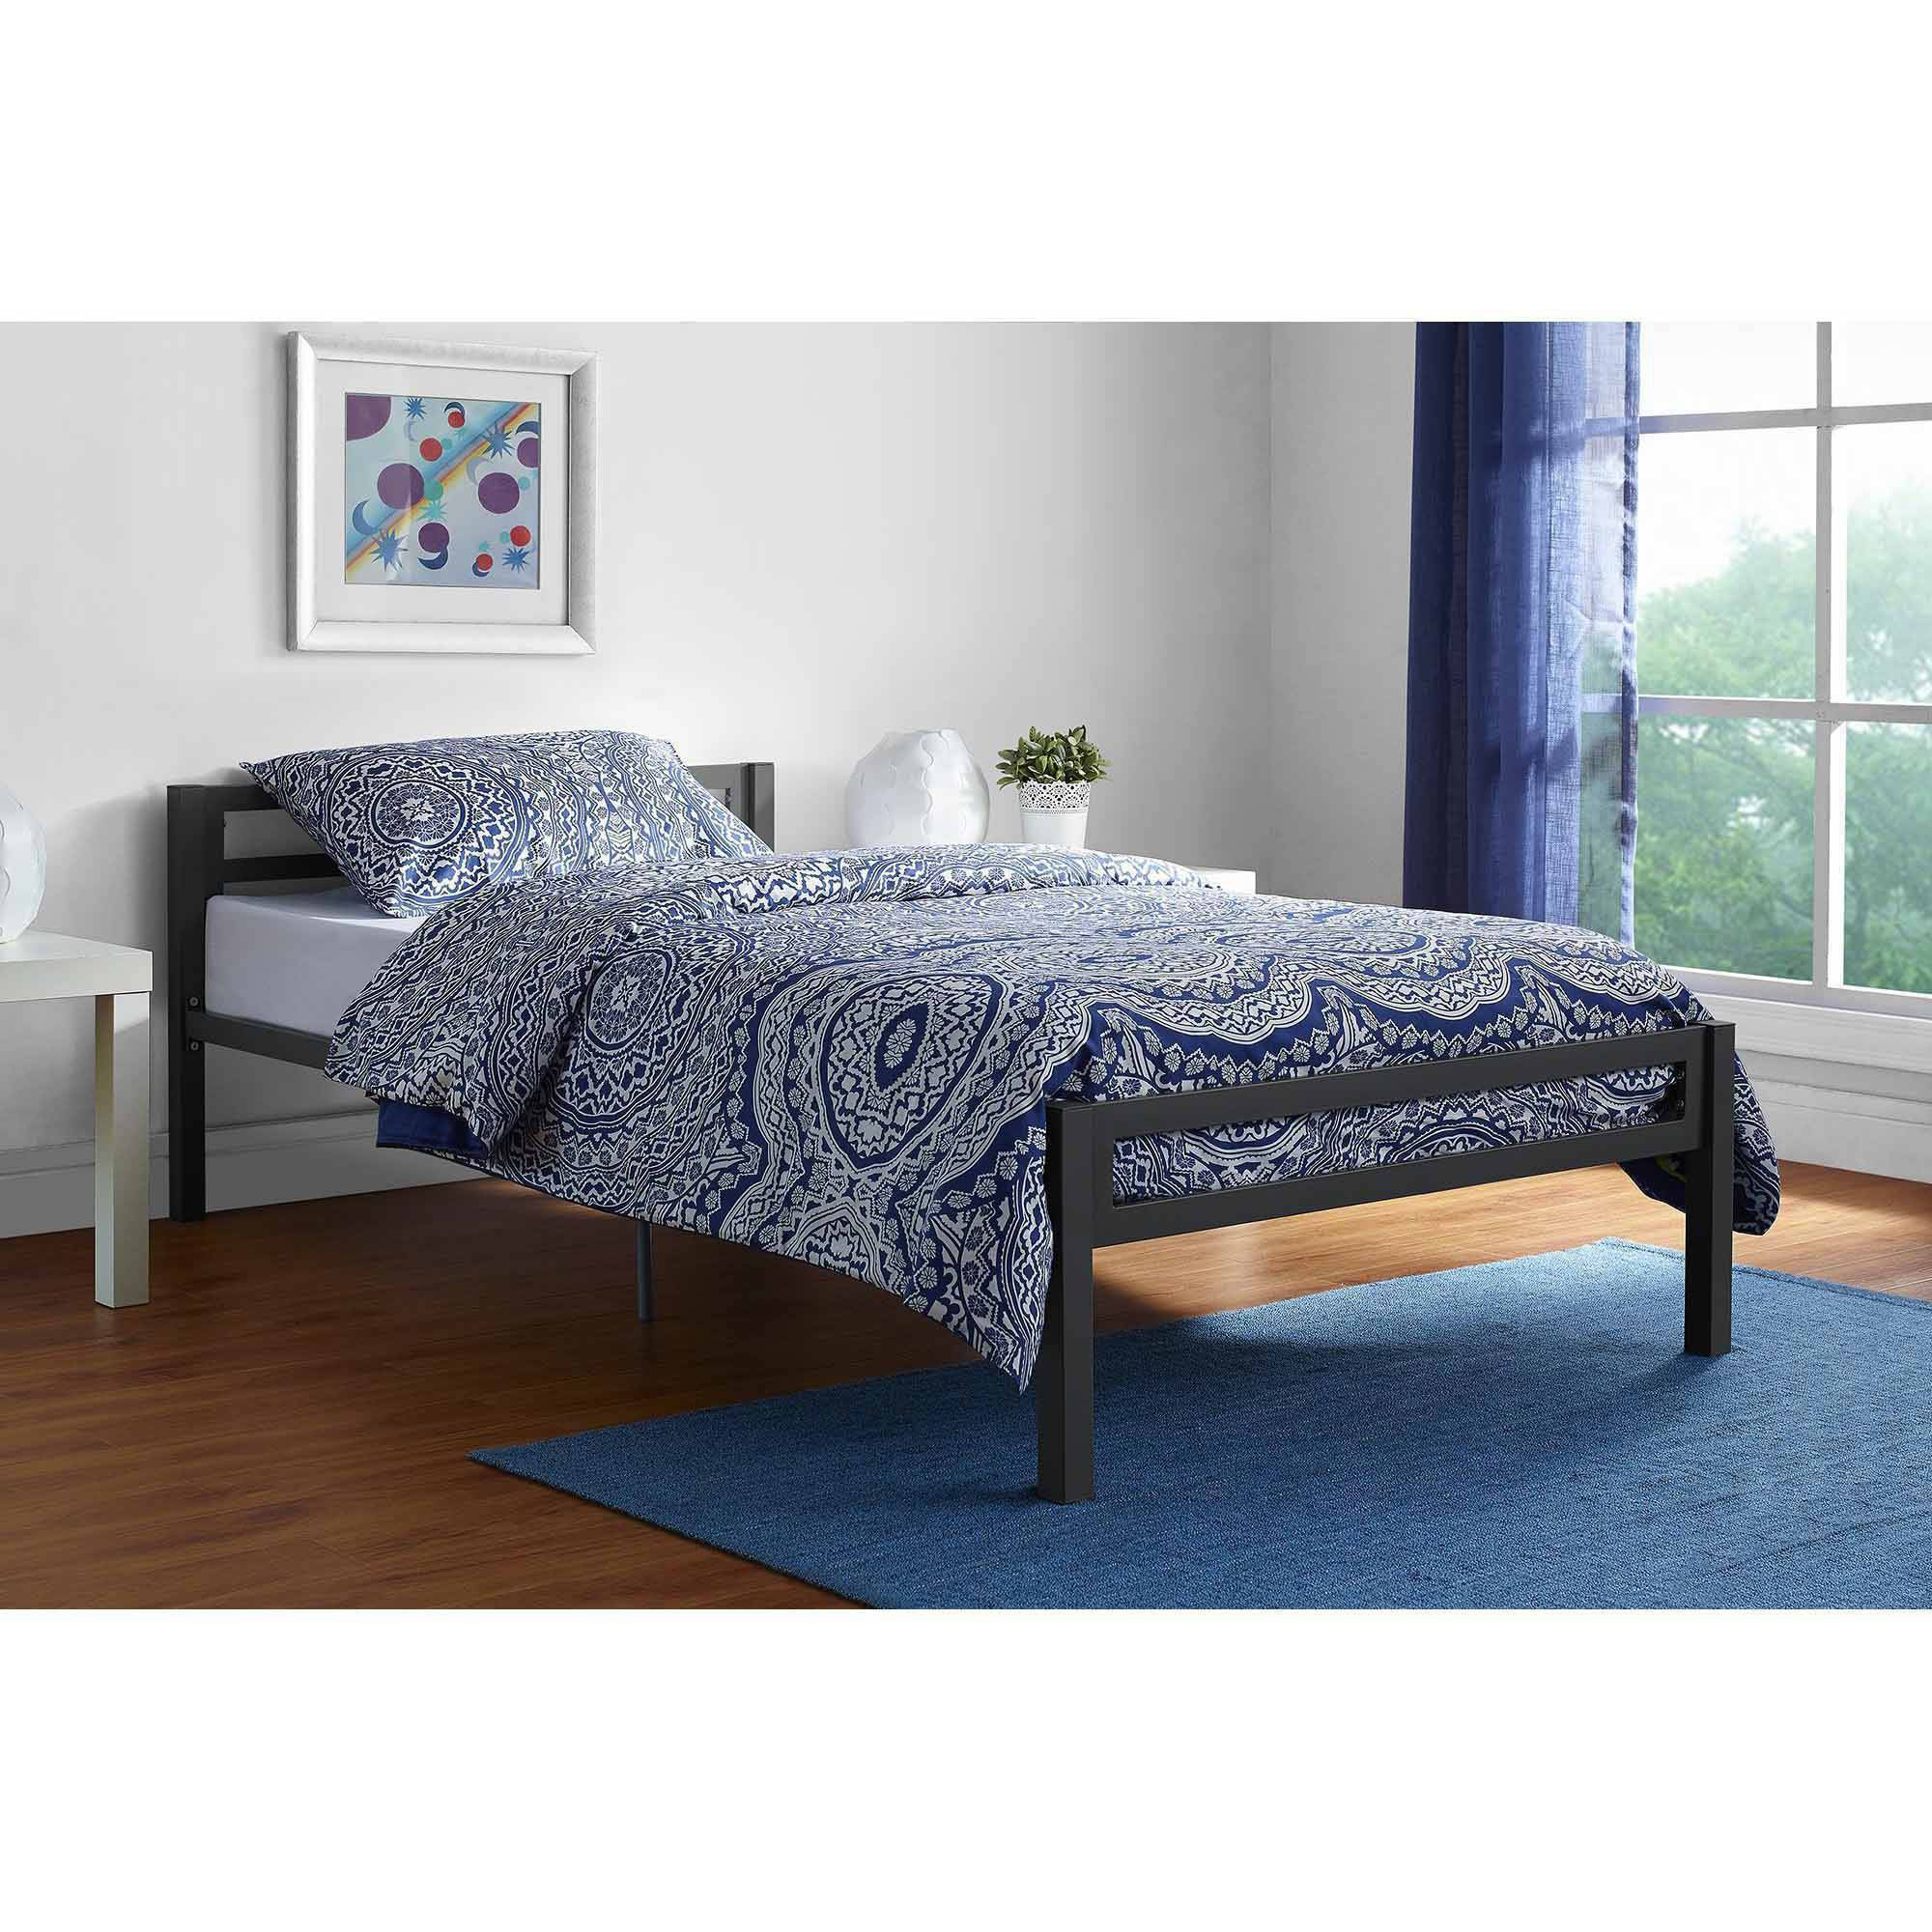 mainstays premium metal twin bed multiple colors walmartcom